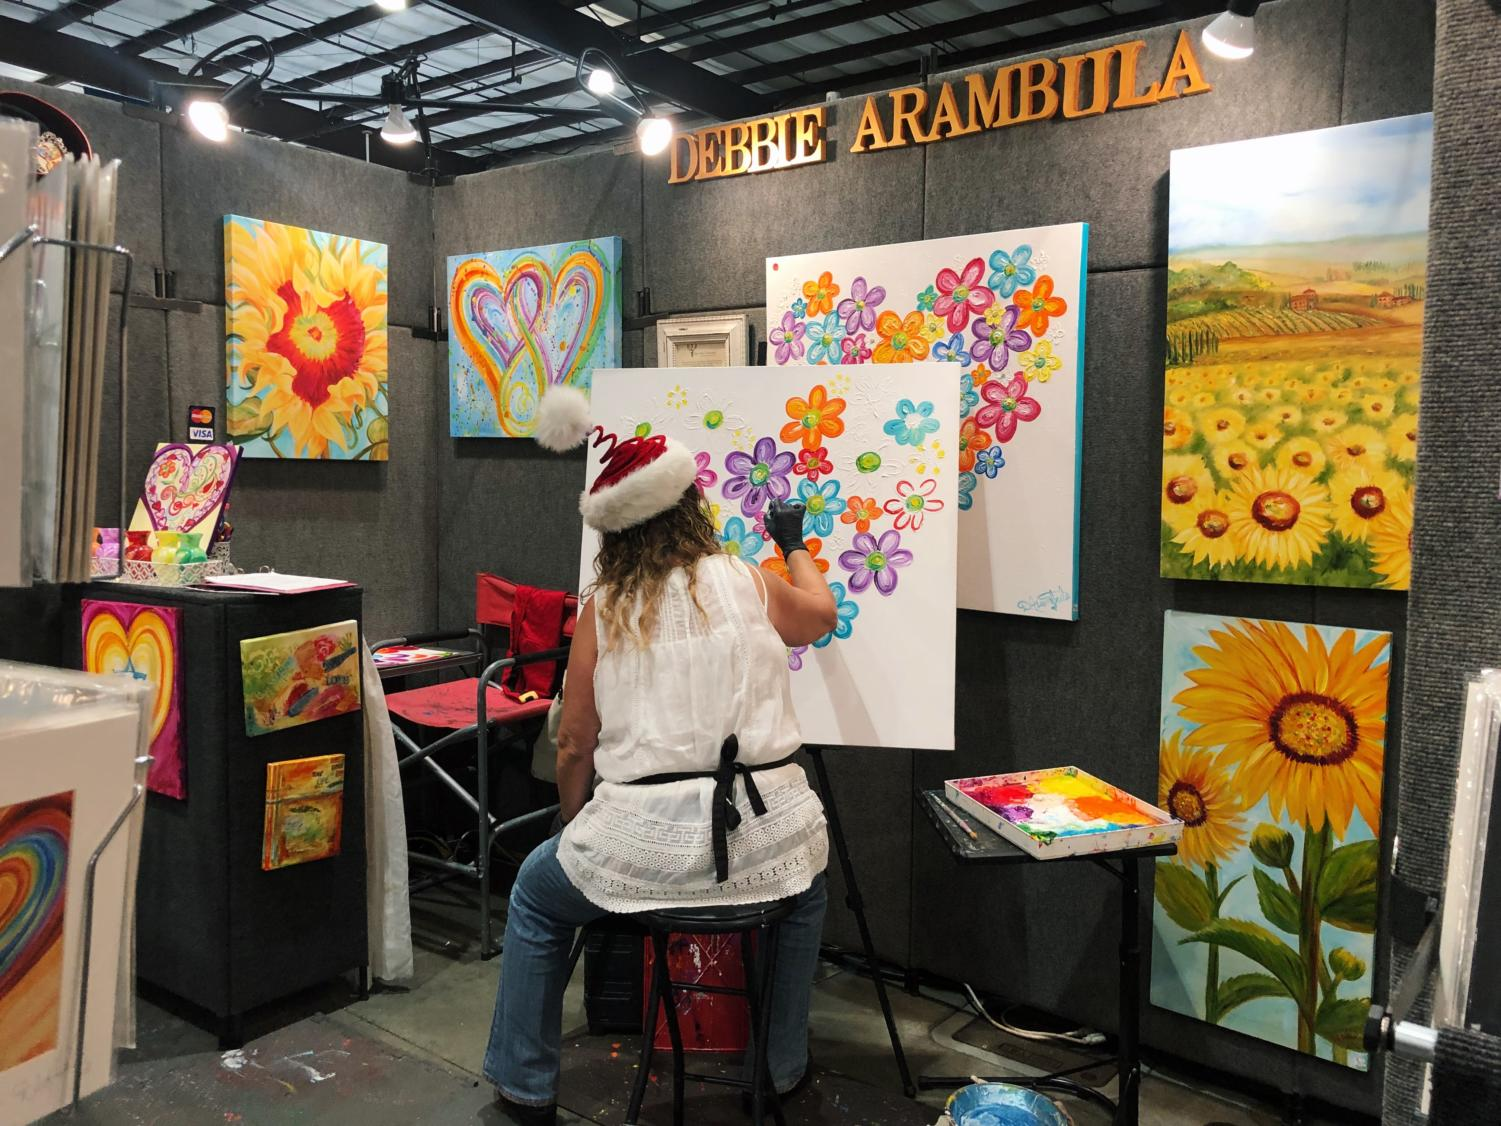 Artist and vender Debbie Arambula works to finish her painting as festival attendees walk by and observe her artwork.